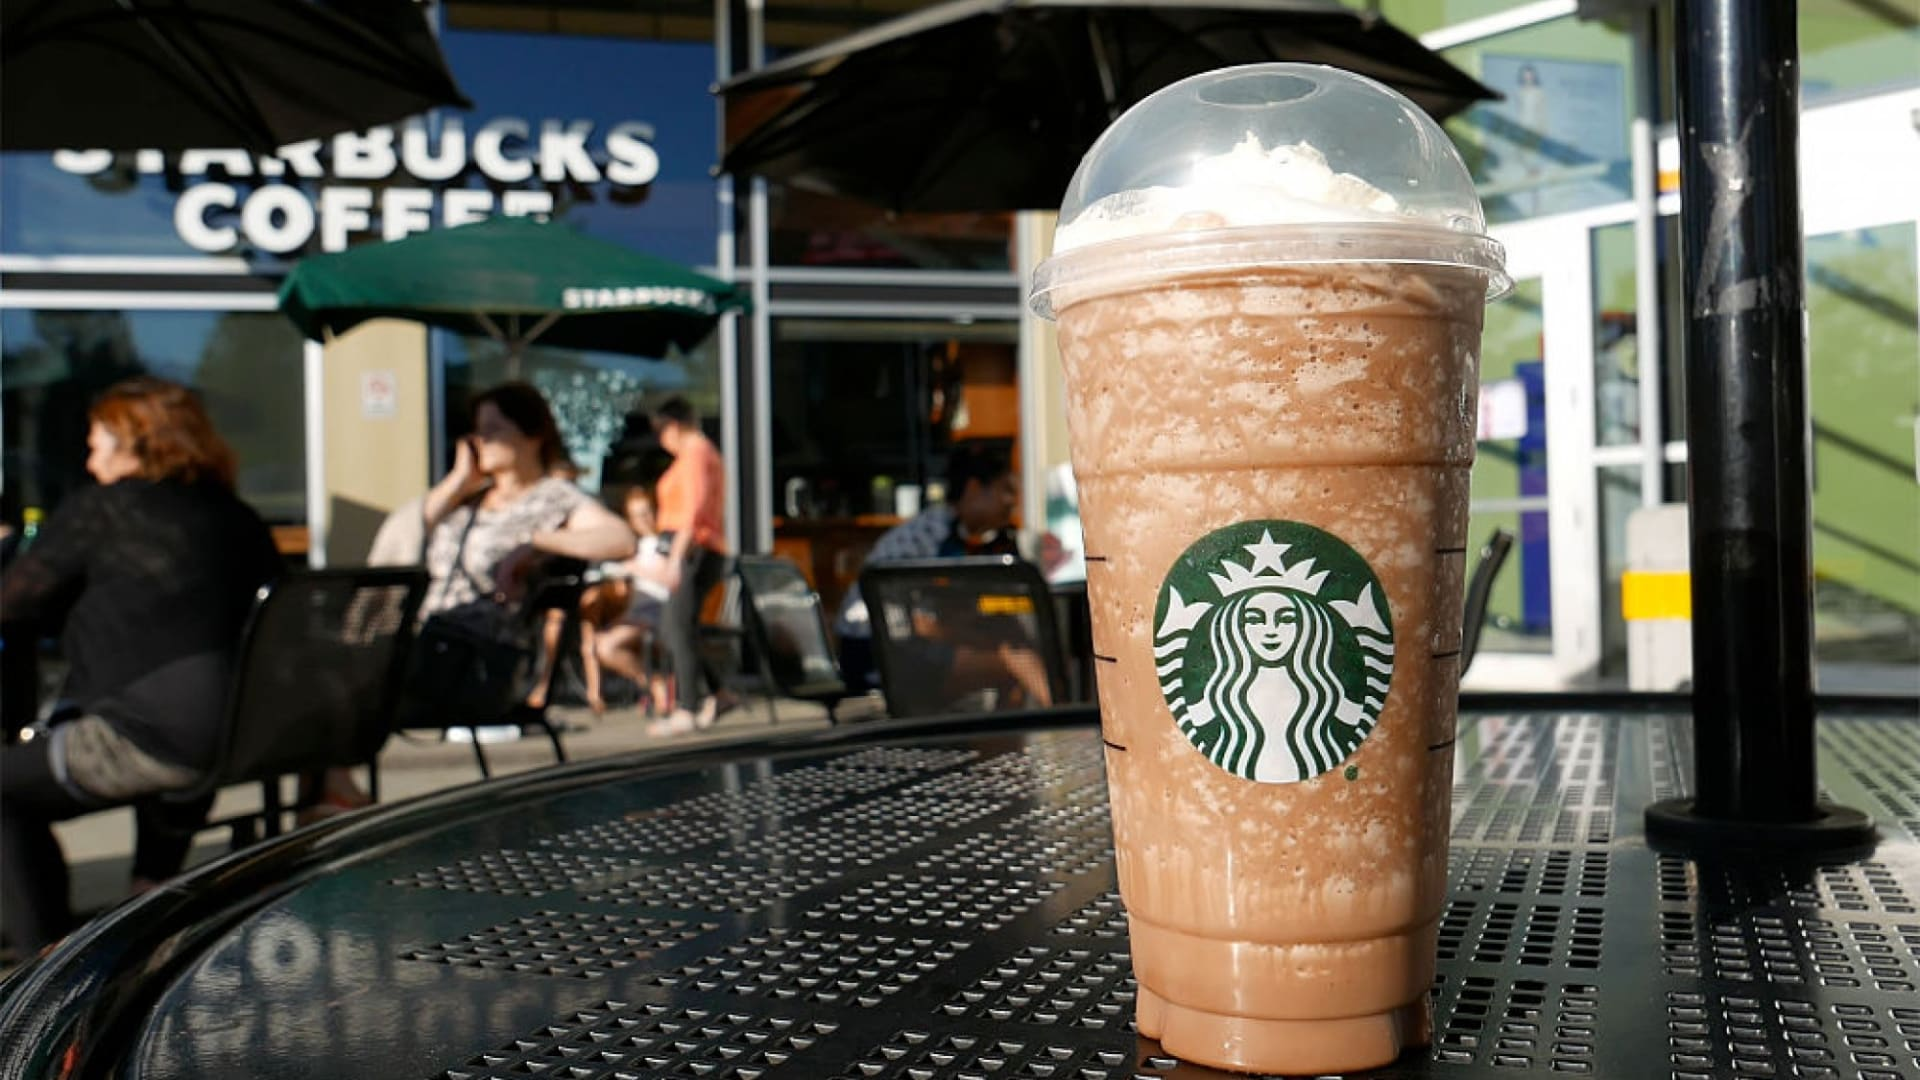 Starbucks Fired a Barista Soon After He Called Out a Crazy Order. They Should Have Given Him a Promotion